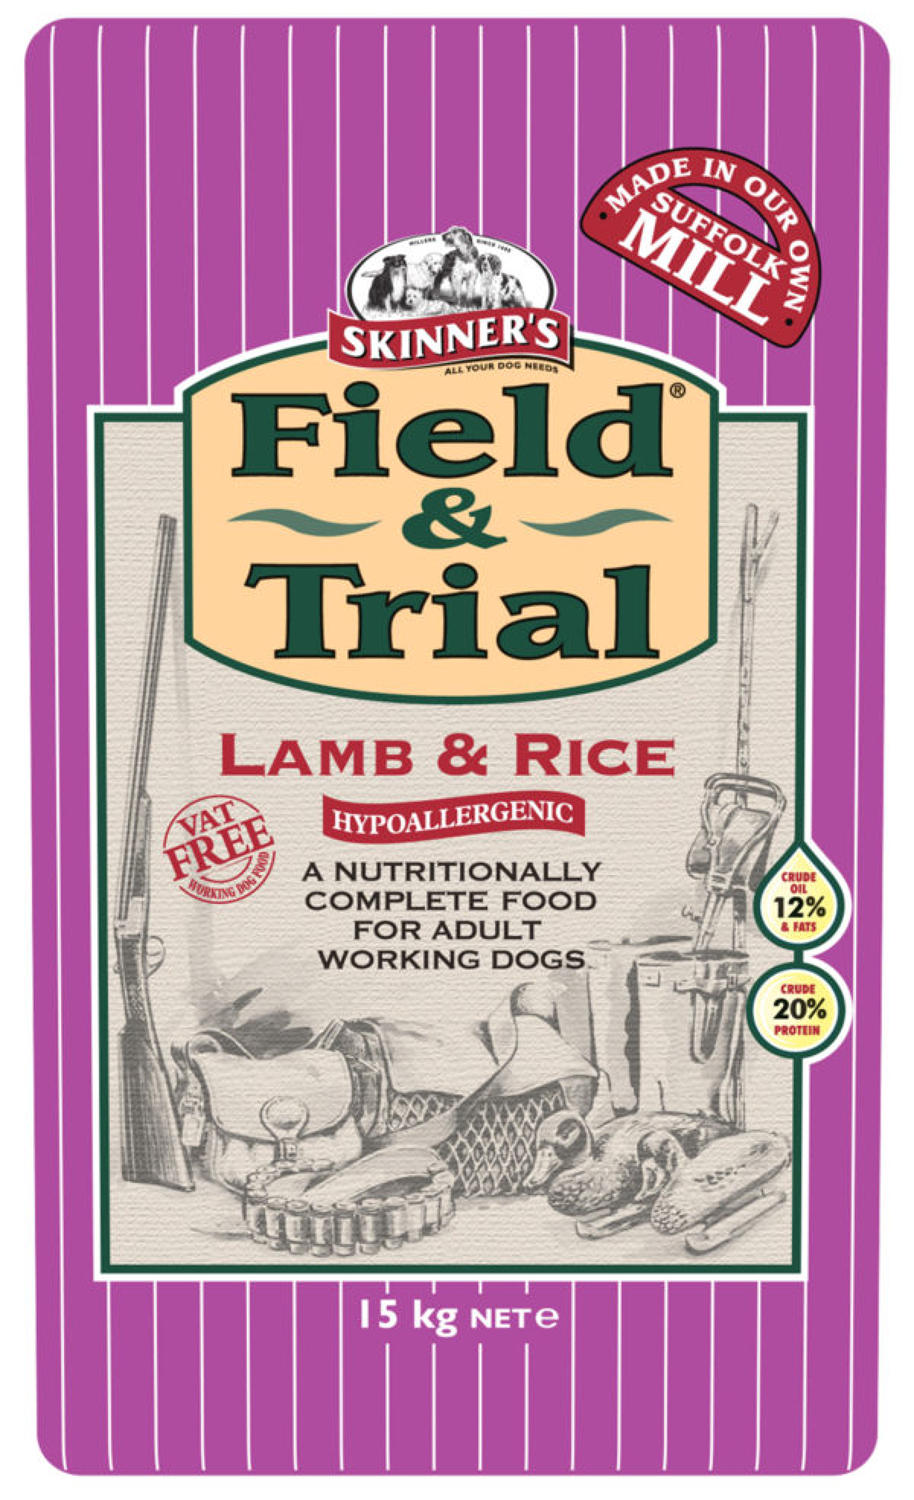 Skinners Field & Trial Lamb & Rice 15kg